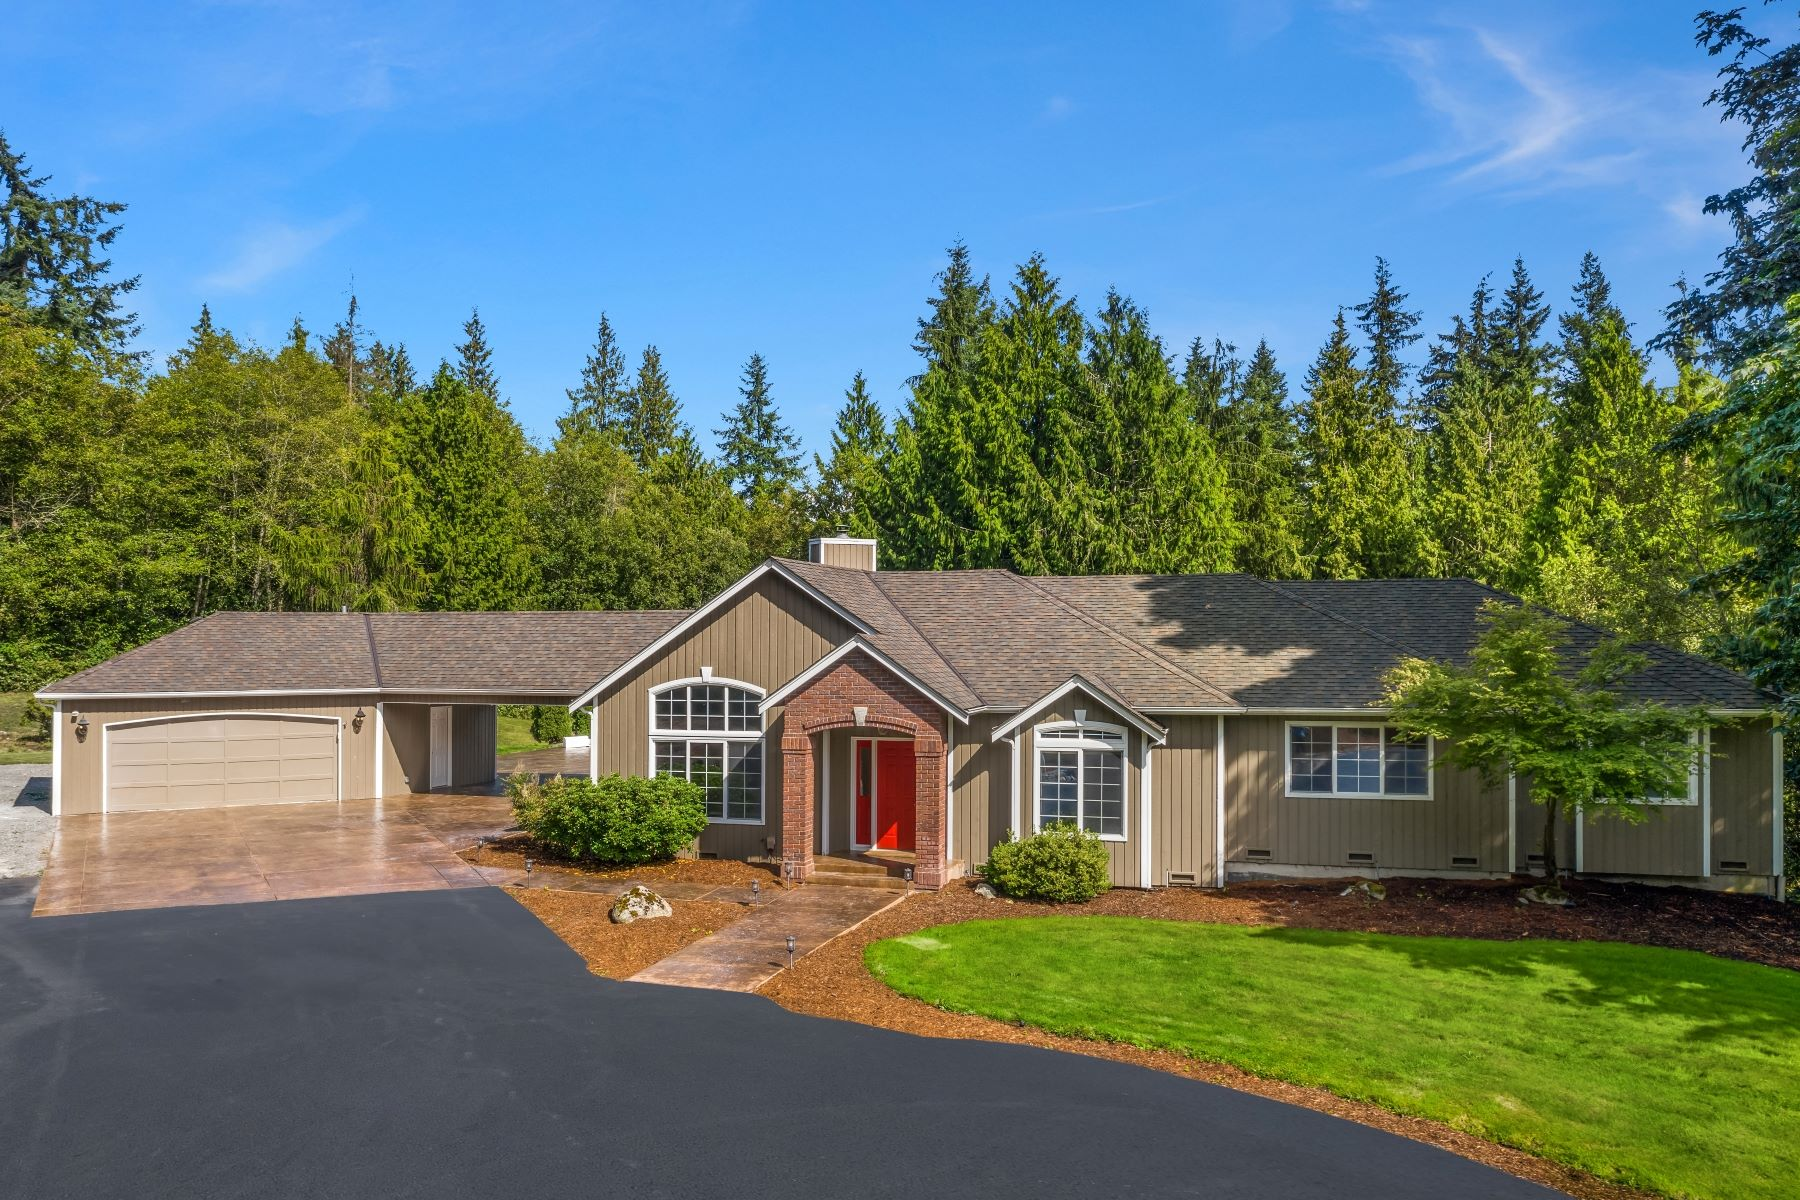 Single Family Homes for Sale at Kayak Estates 14115 66th Avenue NW Stanwood, Washington 98292 United States